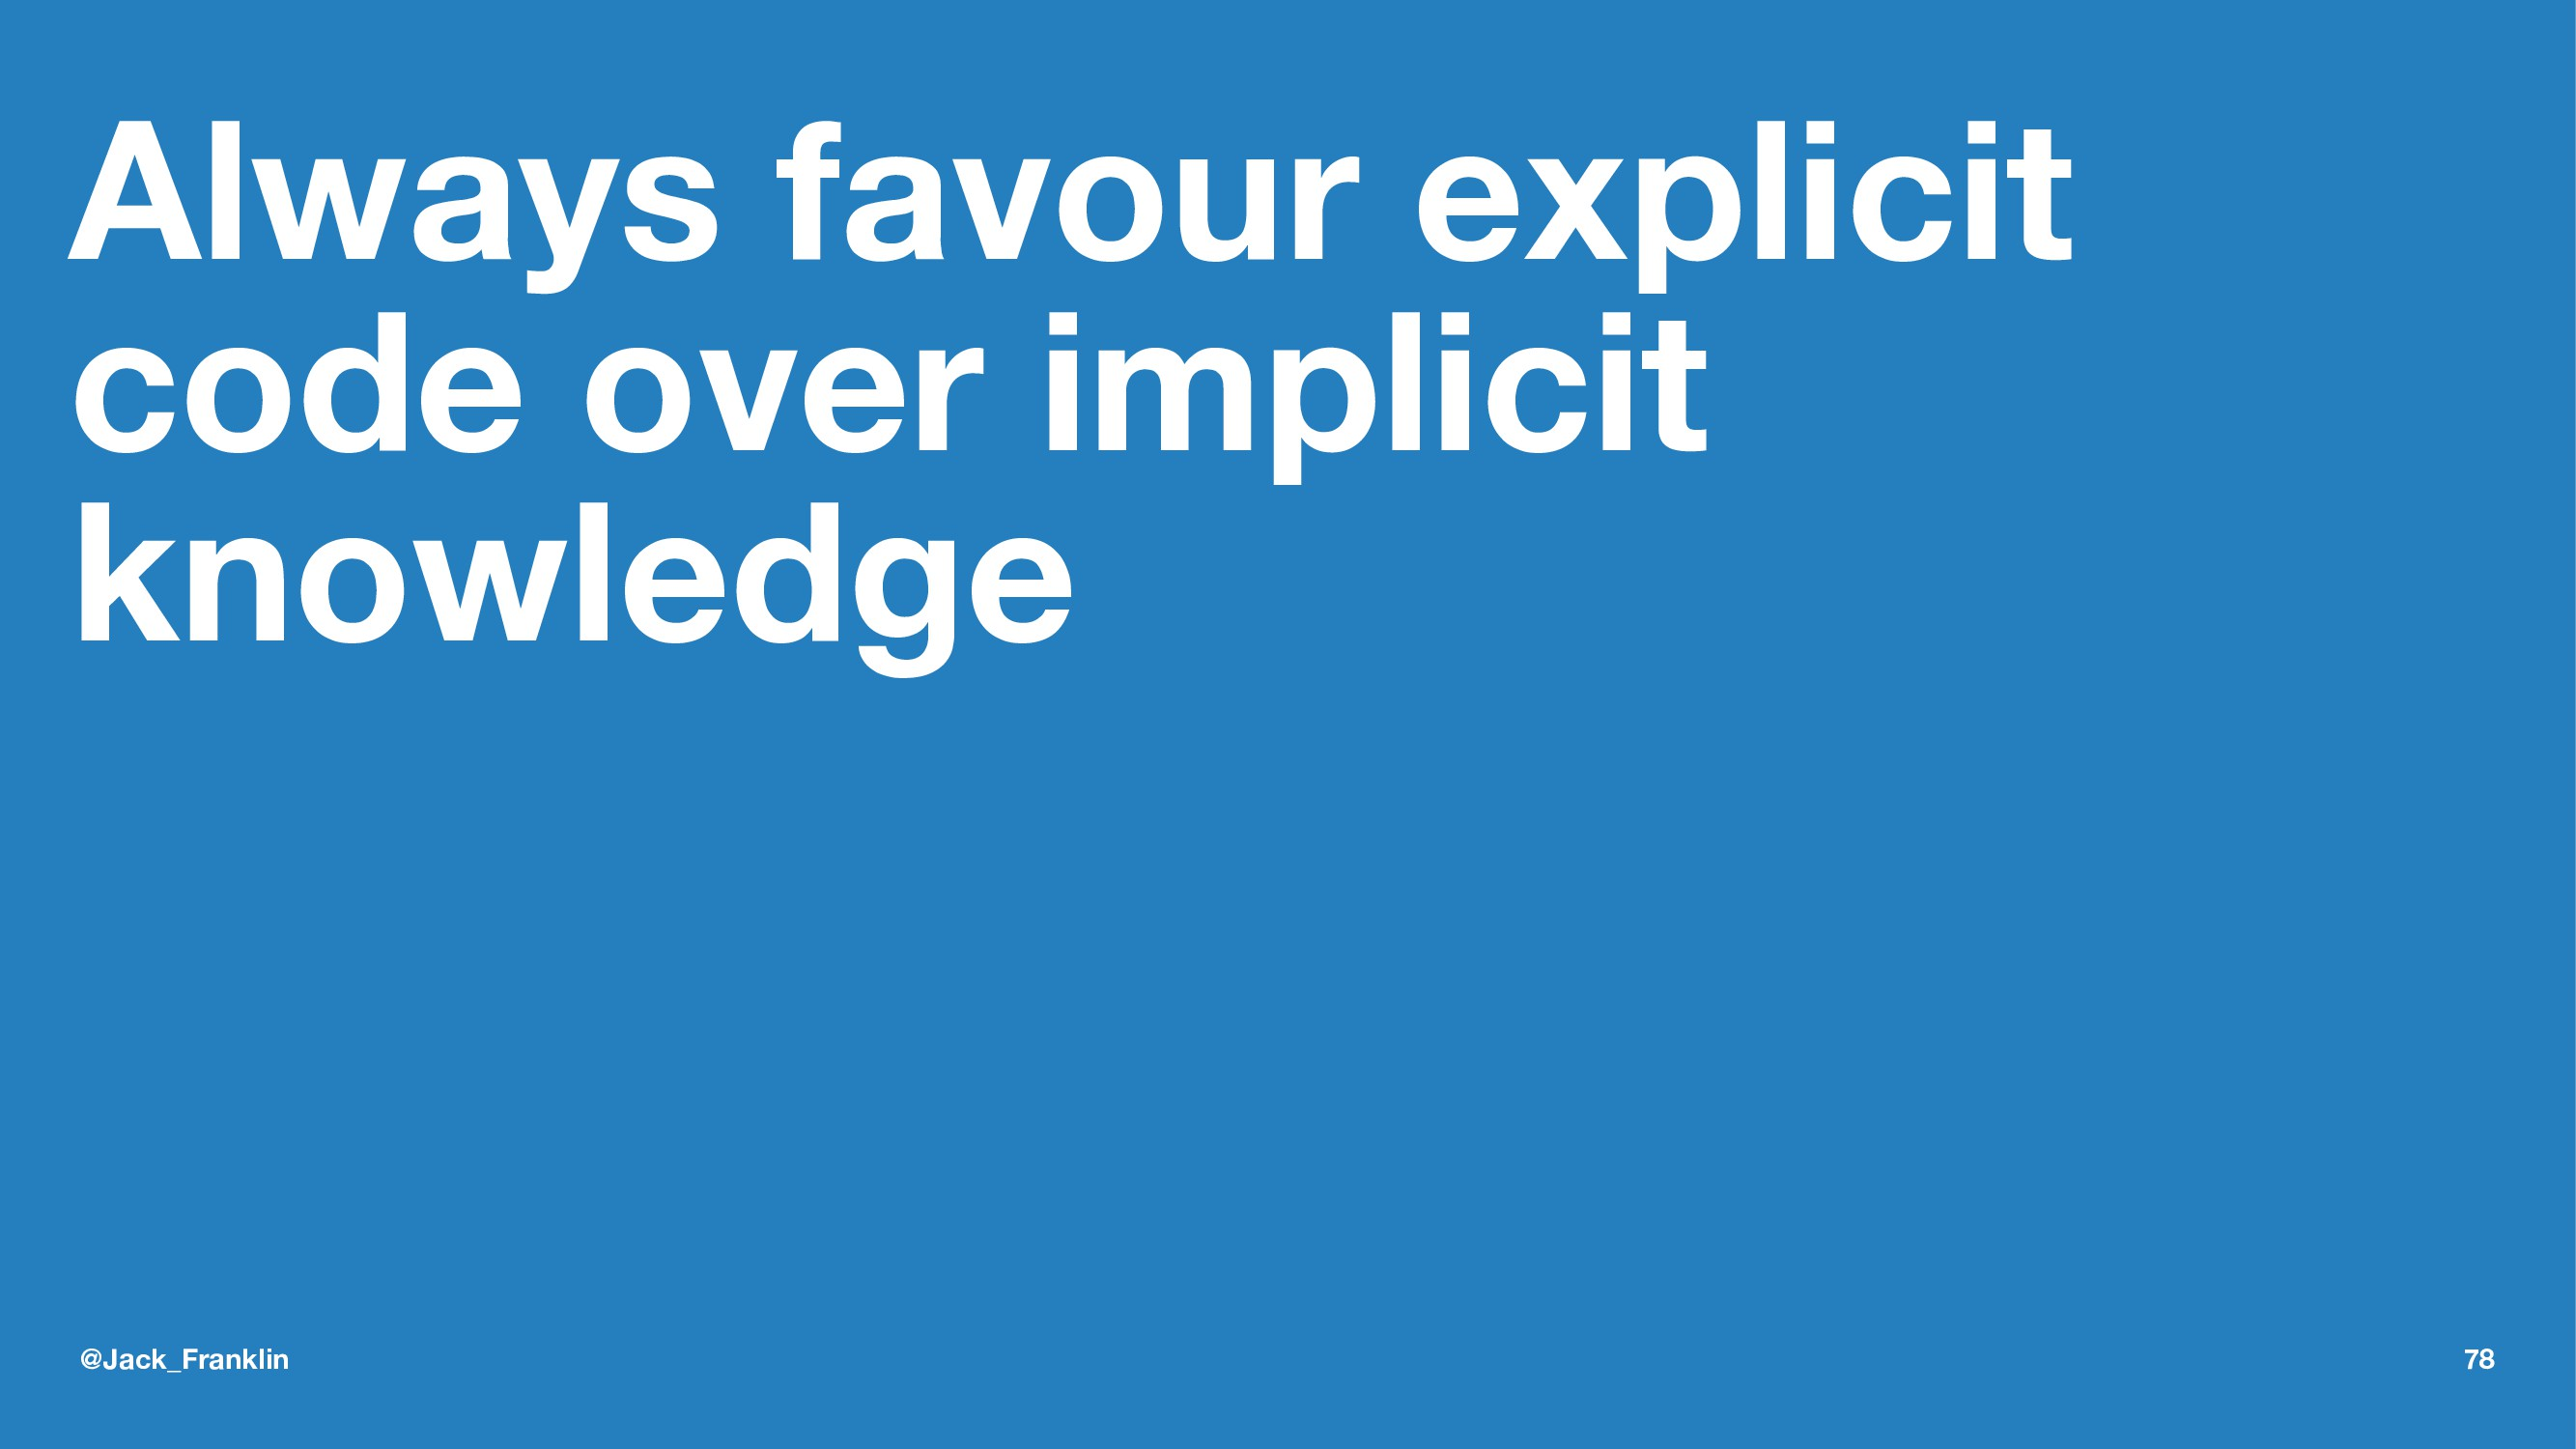 Always favour explicit code over implicit knowl...